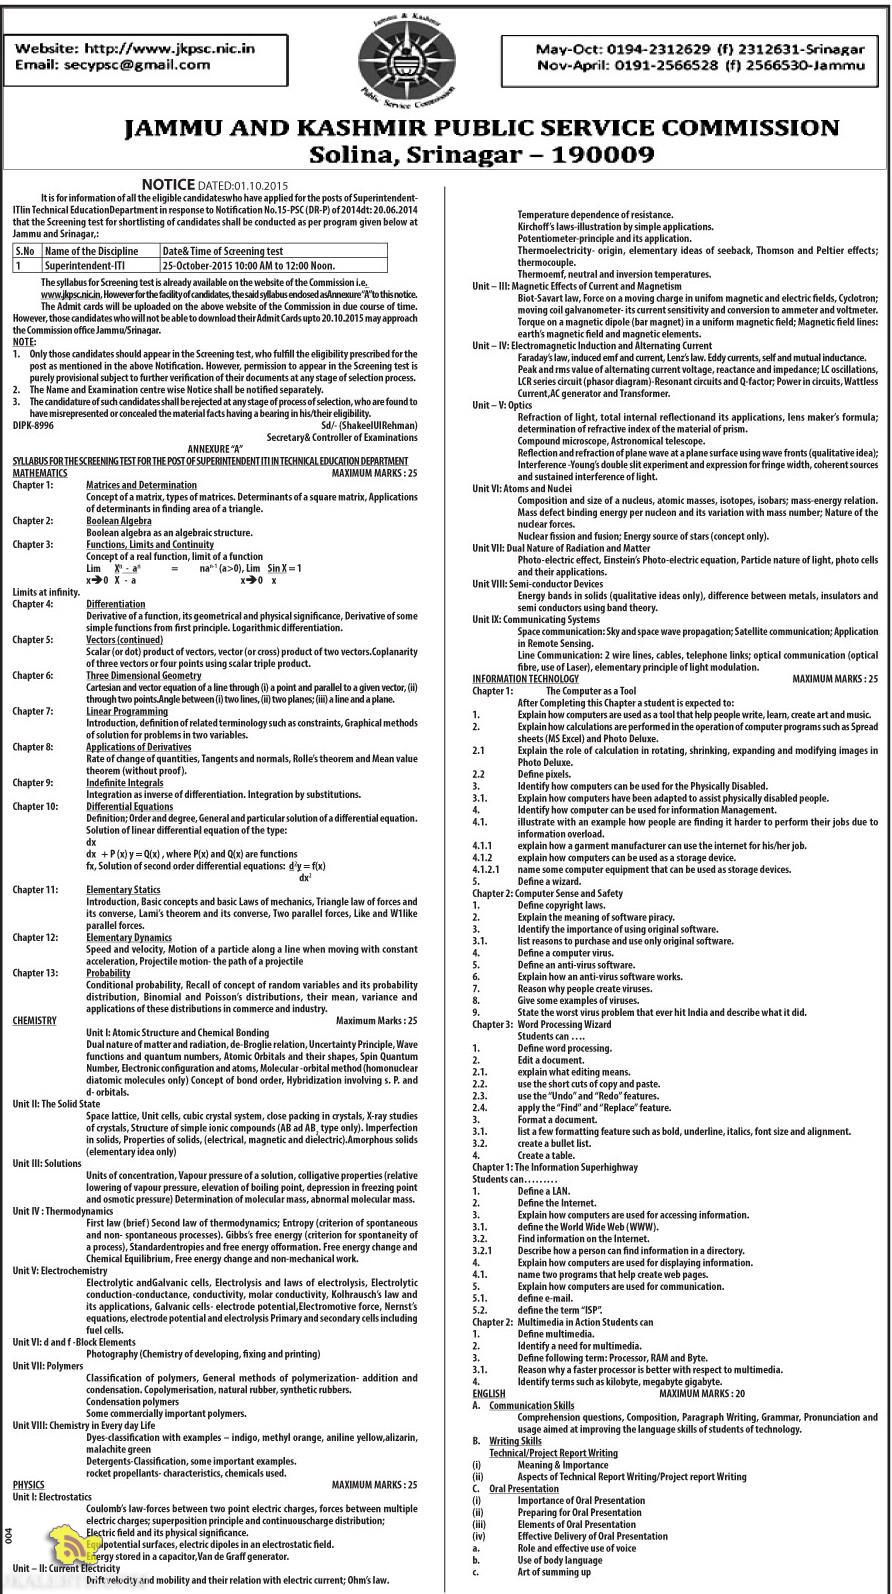 JKPSC SCREENING TEST AND SYLLABUS Superintendent- ITI in Technical Education Department